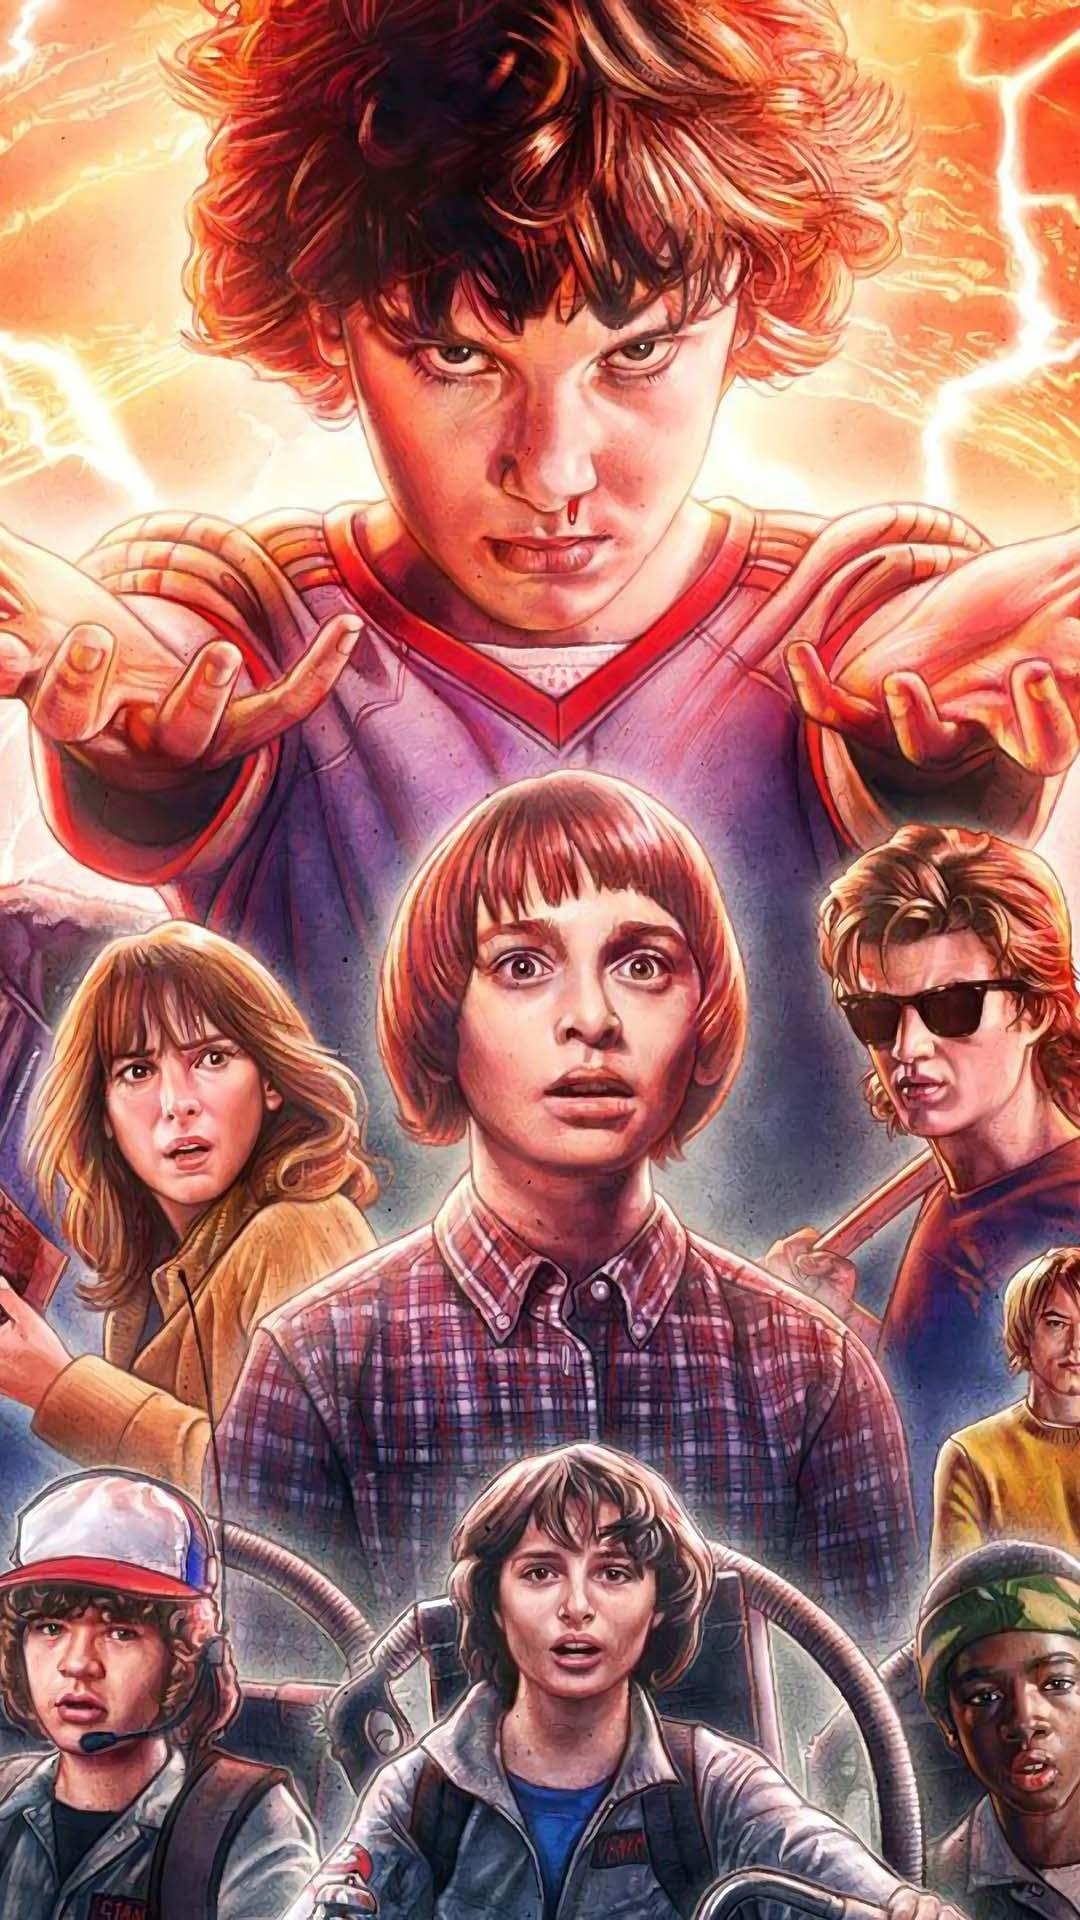 Hd Wallpaper Stranger Things 2 Wallpaper For Android Apk Download